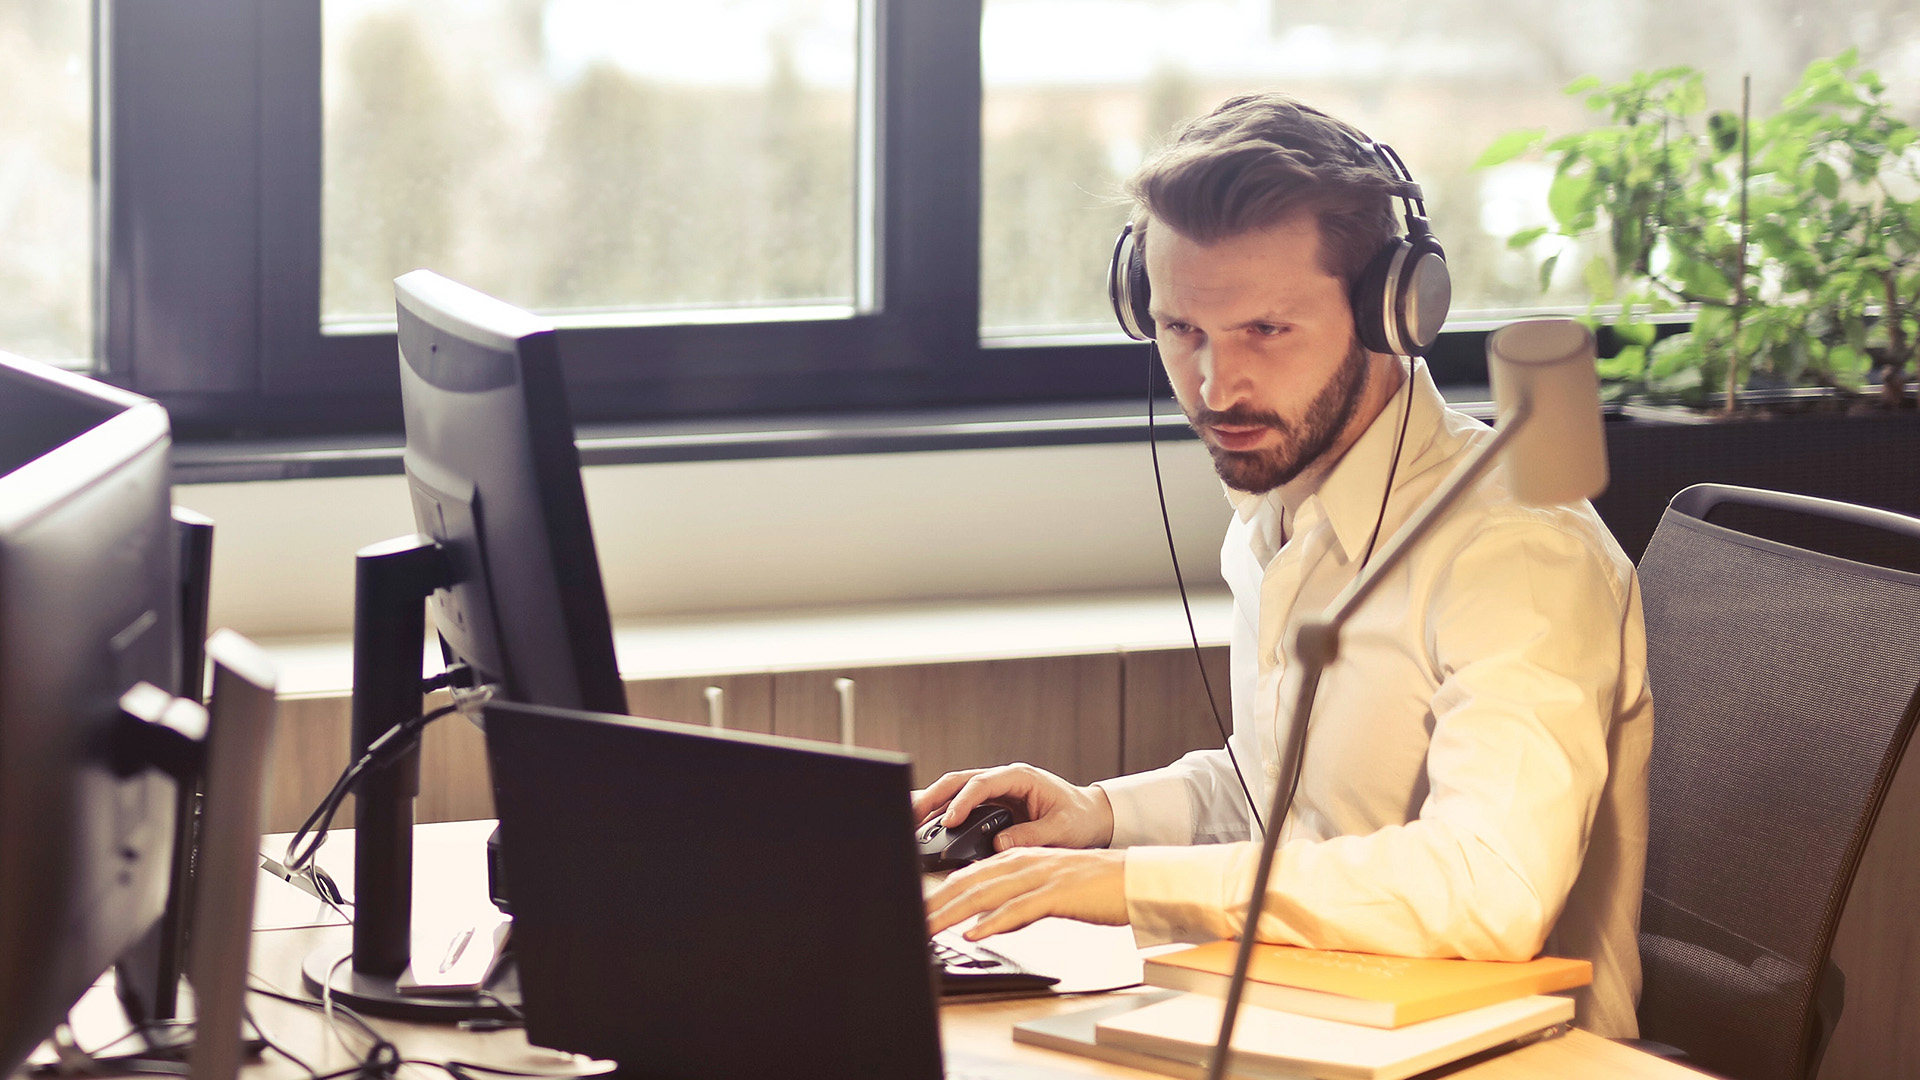 Business man using a computer with headphones